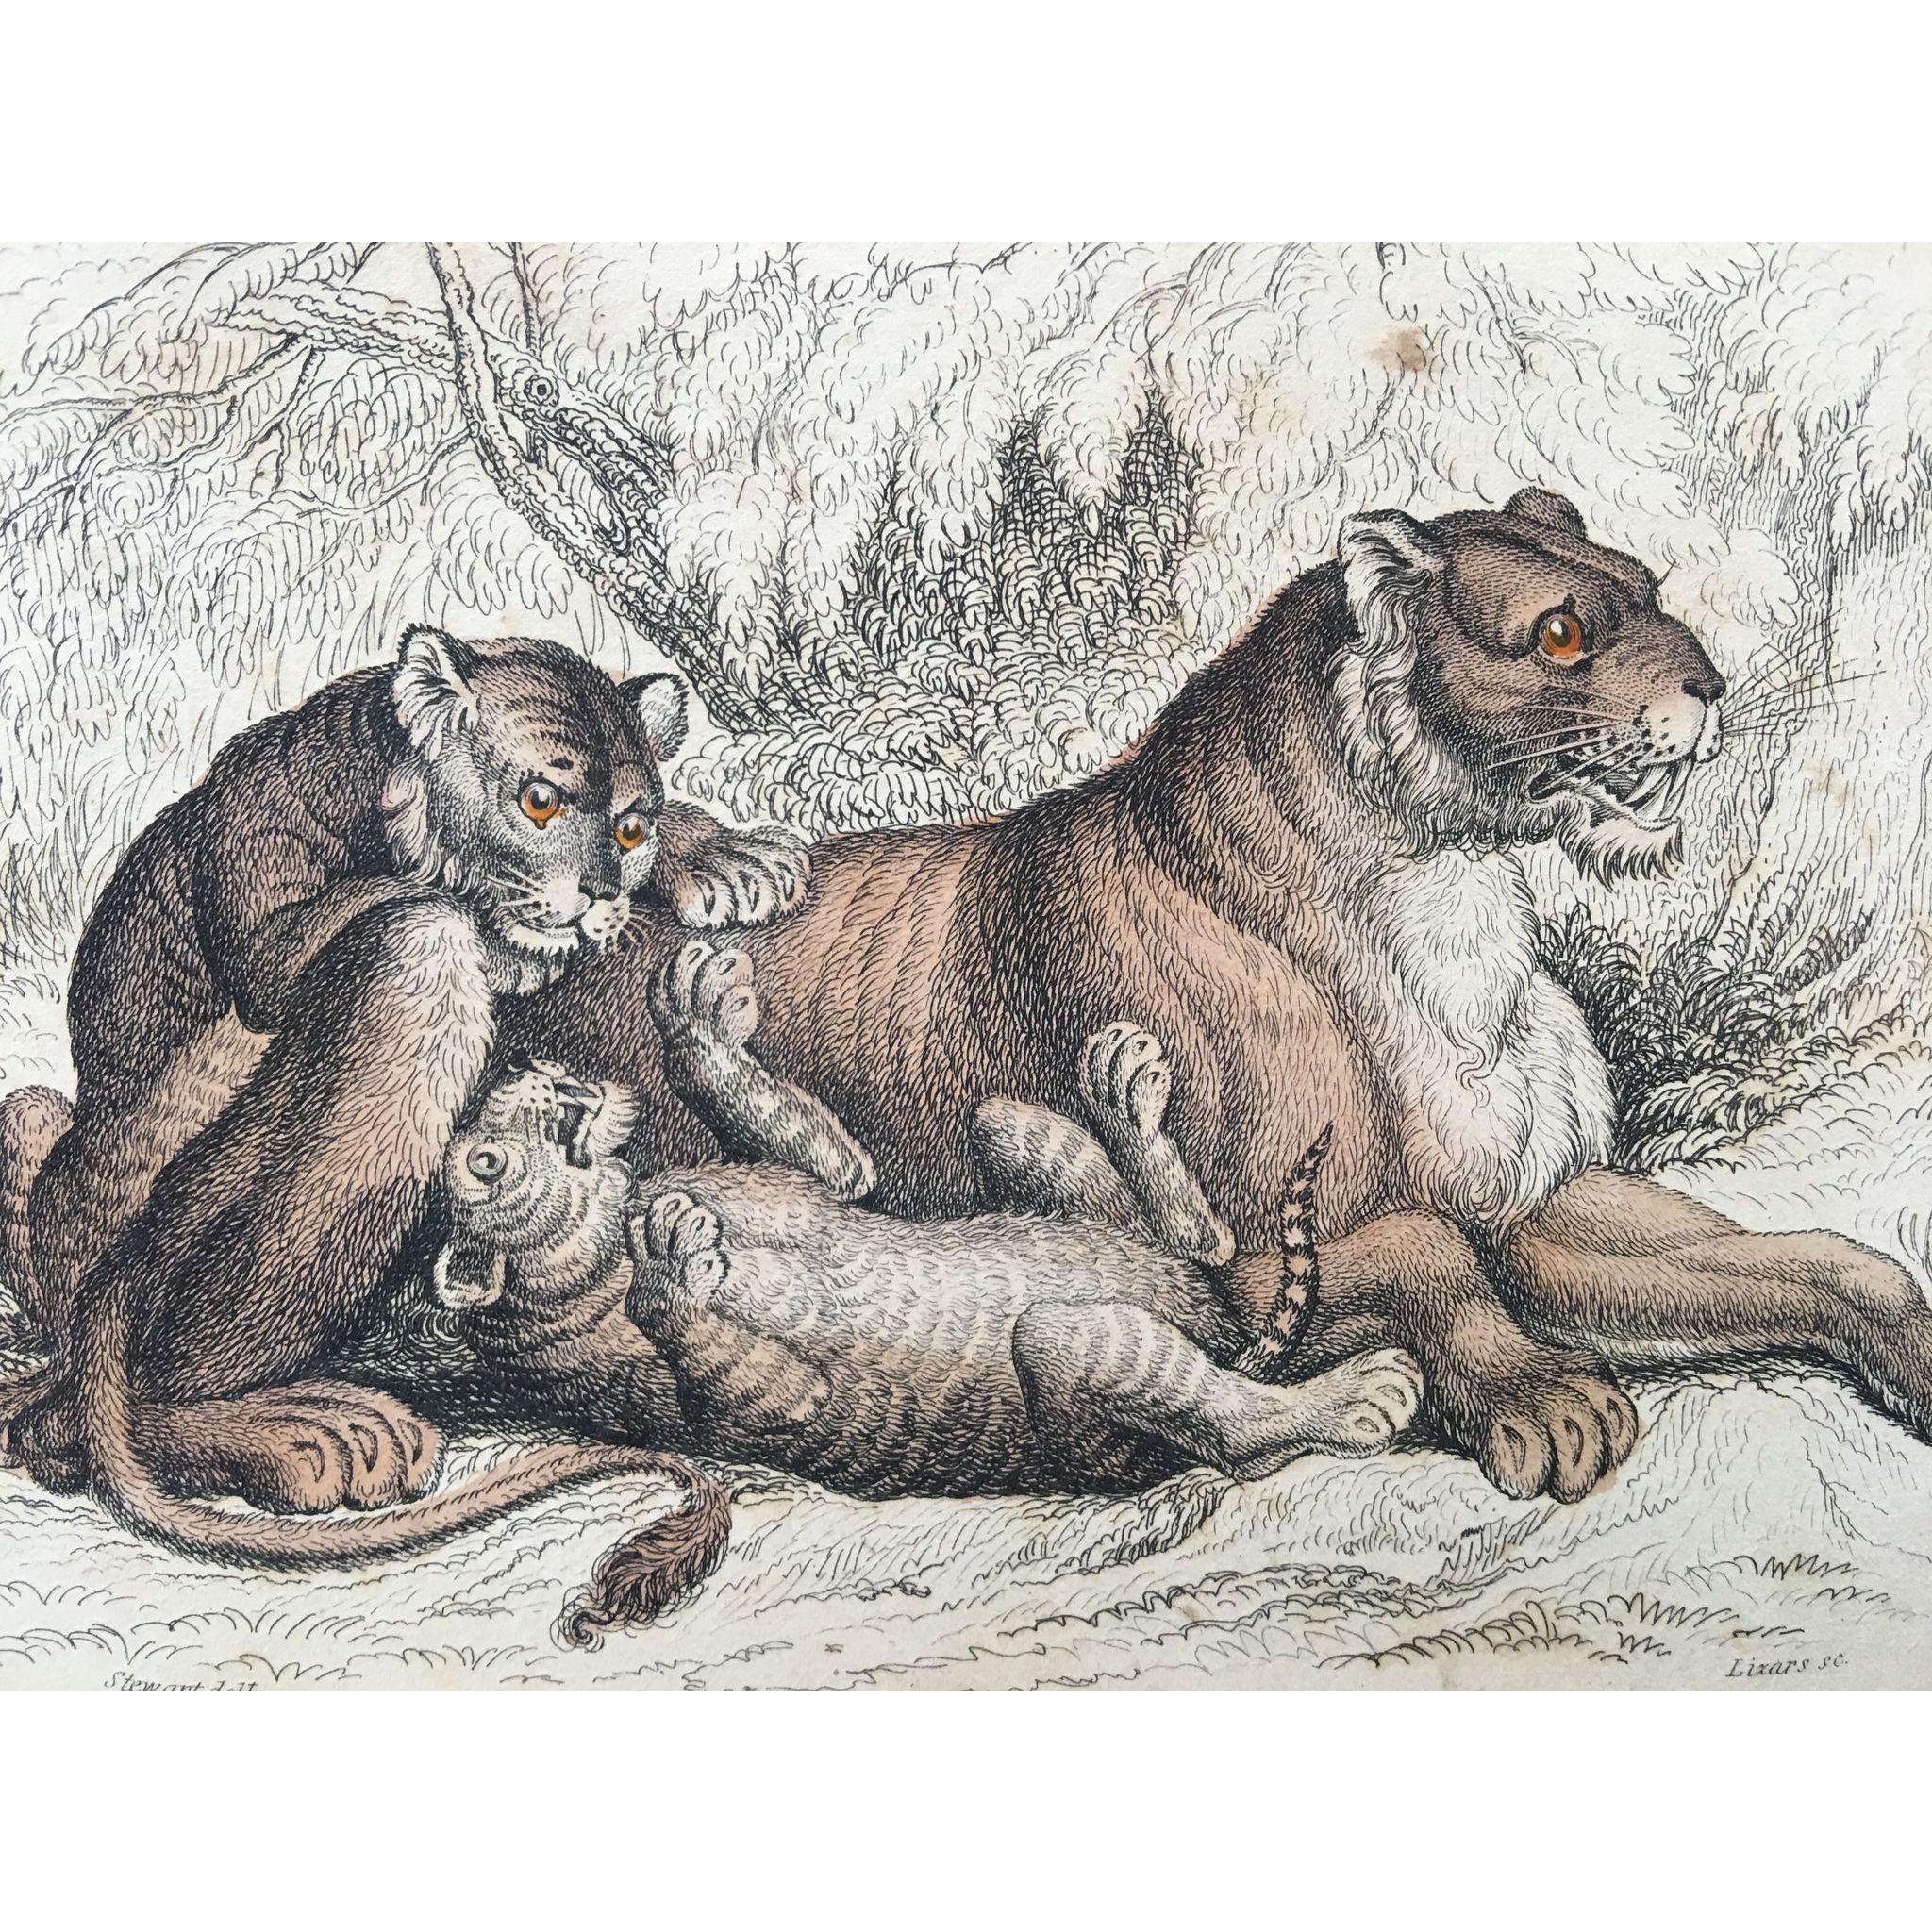 1800's Jardine Lizars Hand Colored FELIS LEO - Female Lion and Cubs Engraving